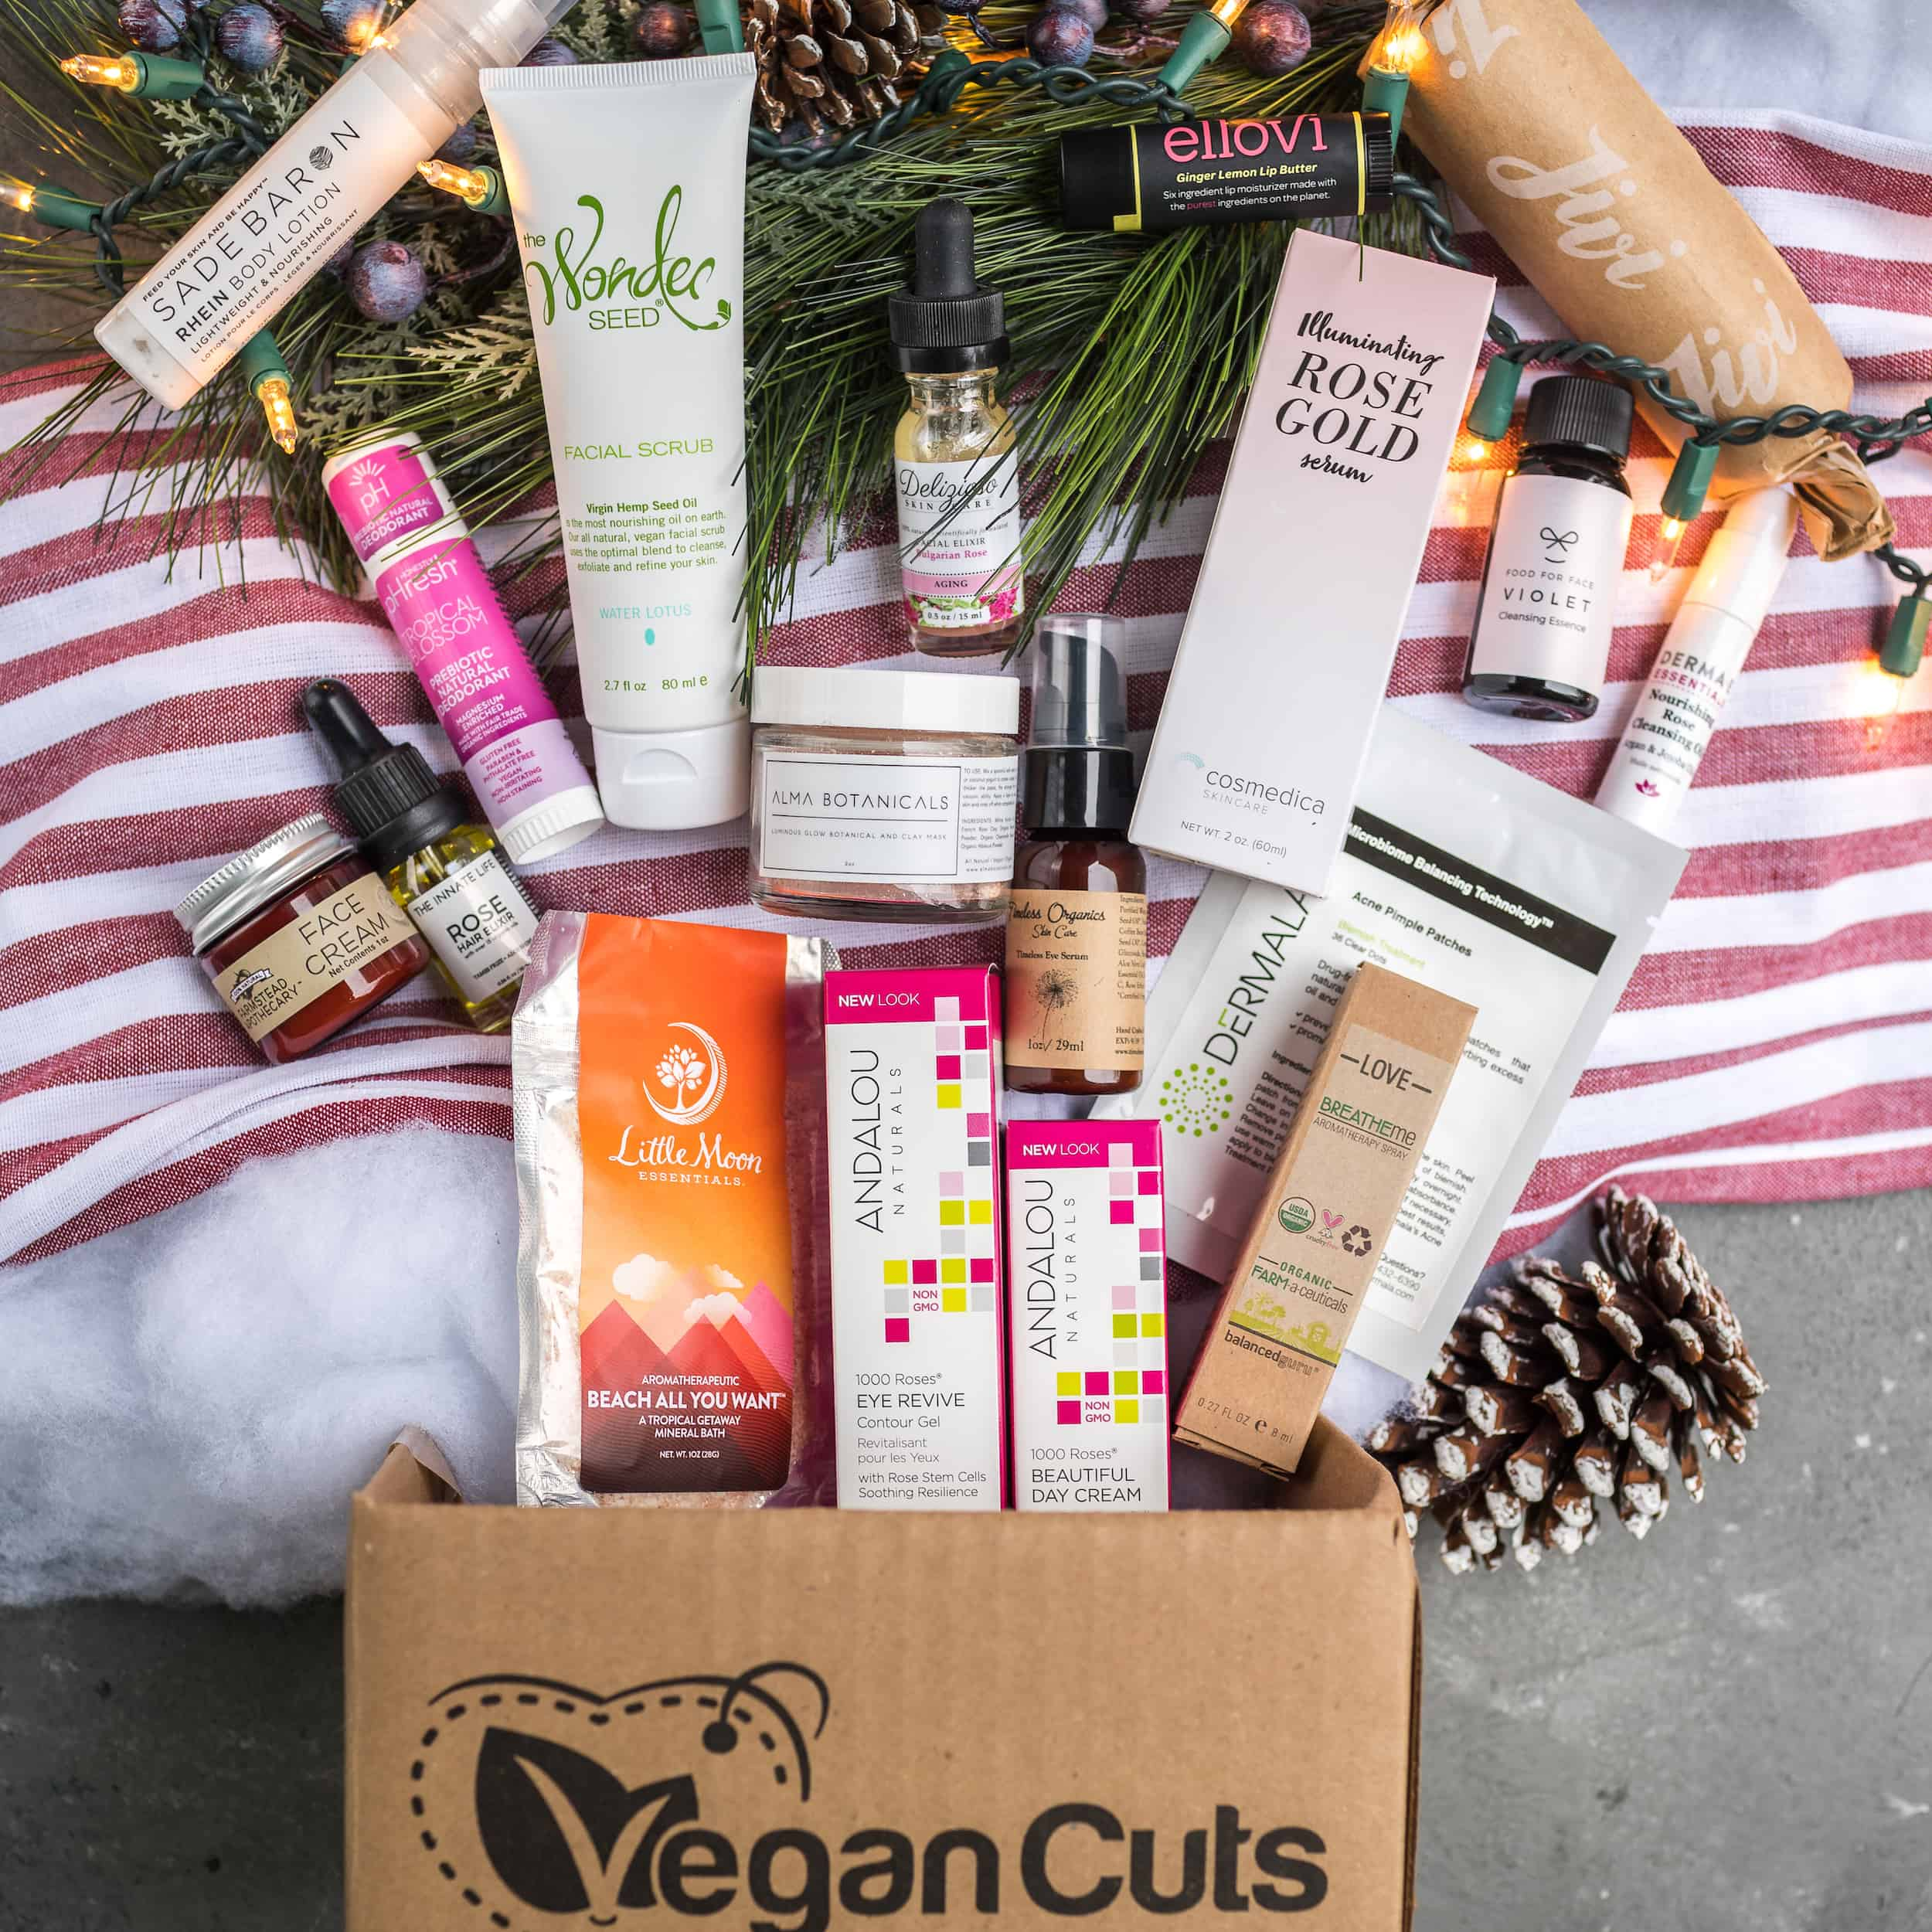 Vegan Cuts Pre Cyber Monday 7 Days of Holiday Sales: Day 3 -Luxuriate Beauty Haul for $34!